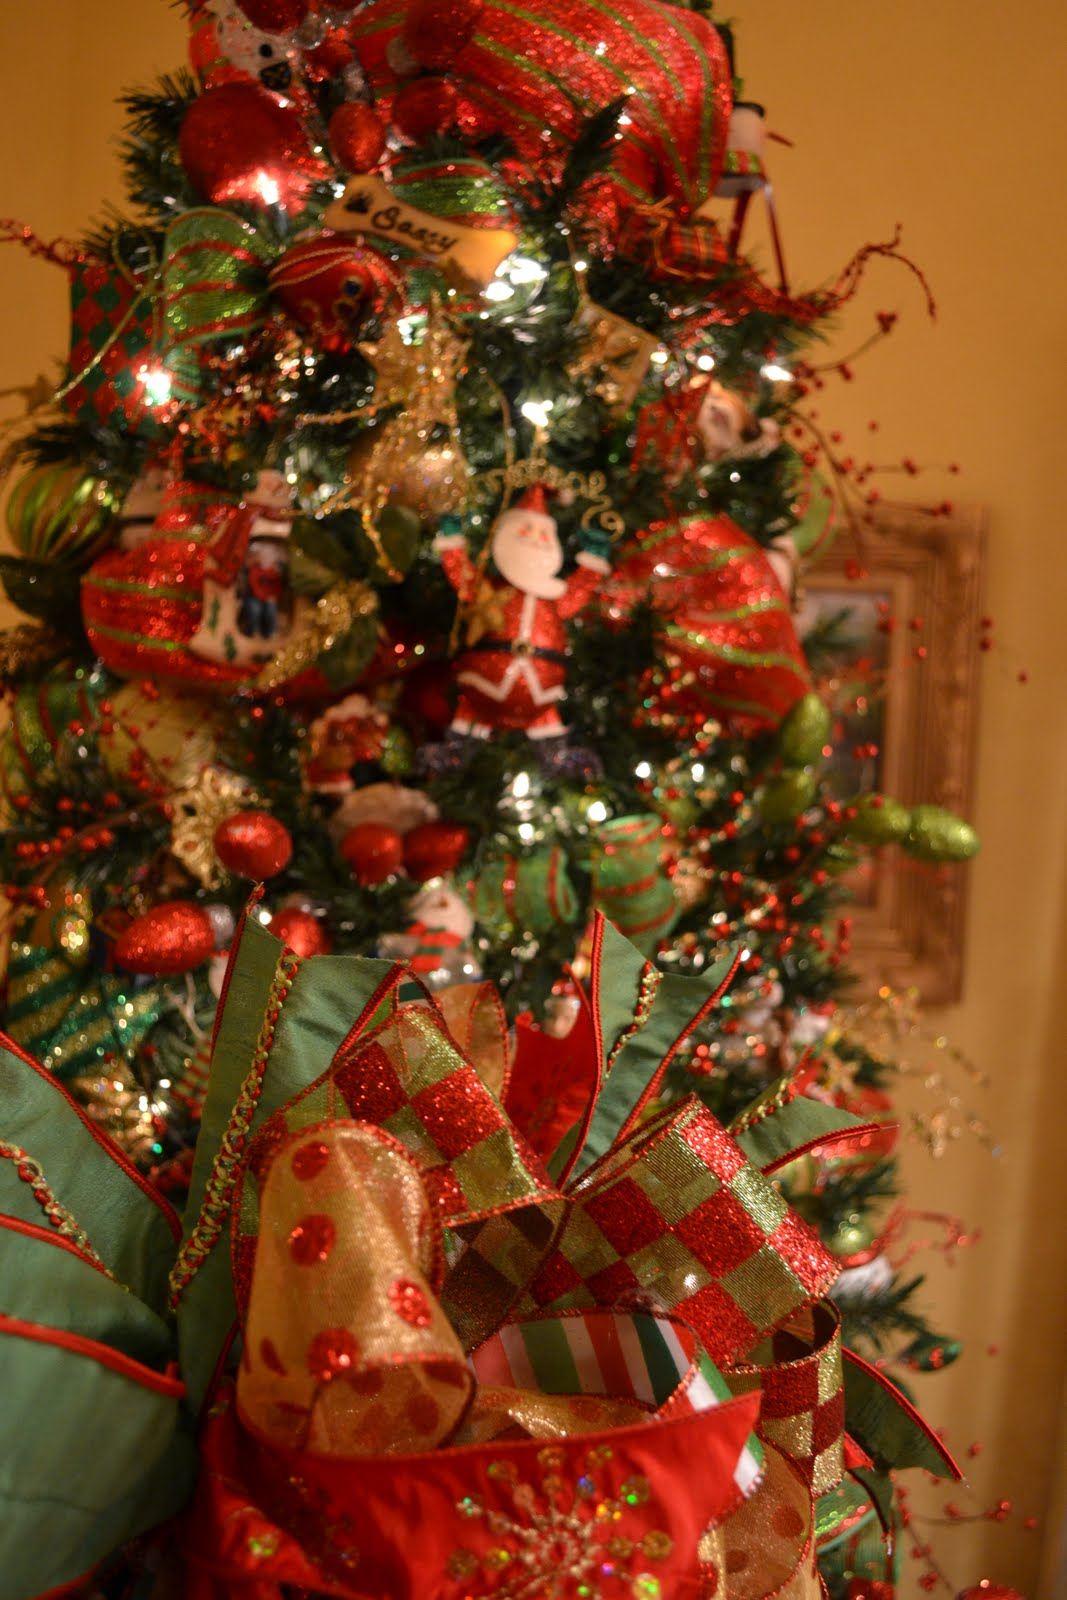 Christmas tree decorations with mesh - photo#45